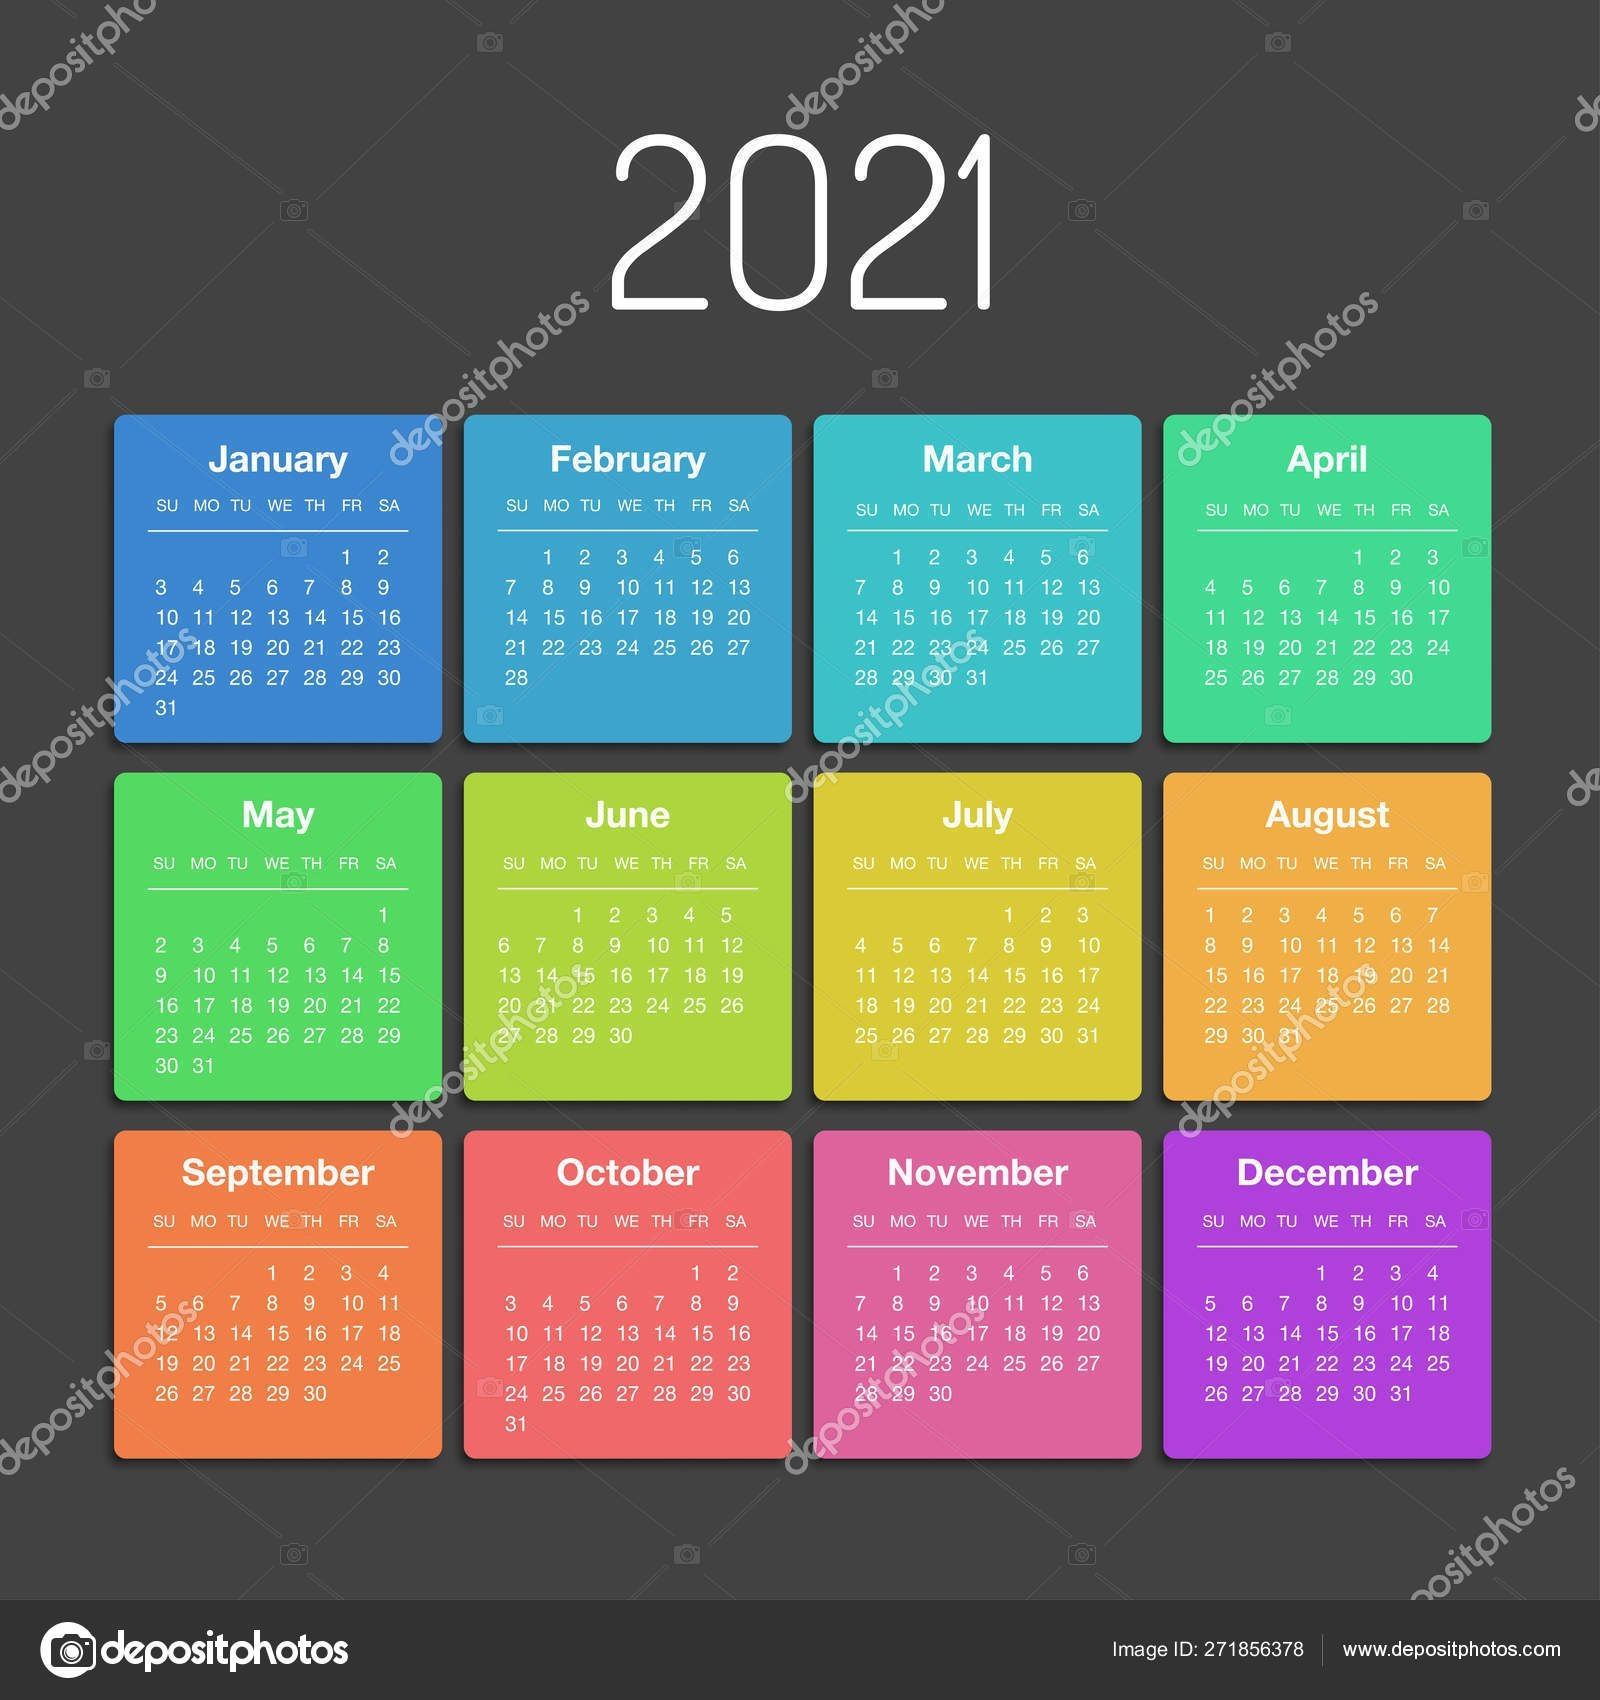 Calendar 2021 Year Template Day Planner In This Minimalist